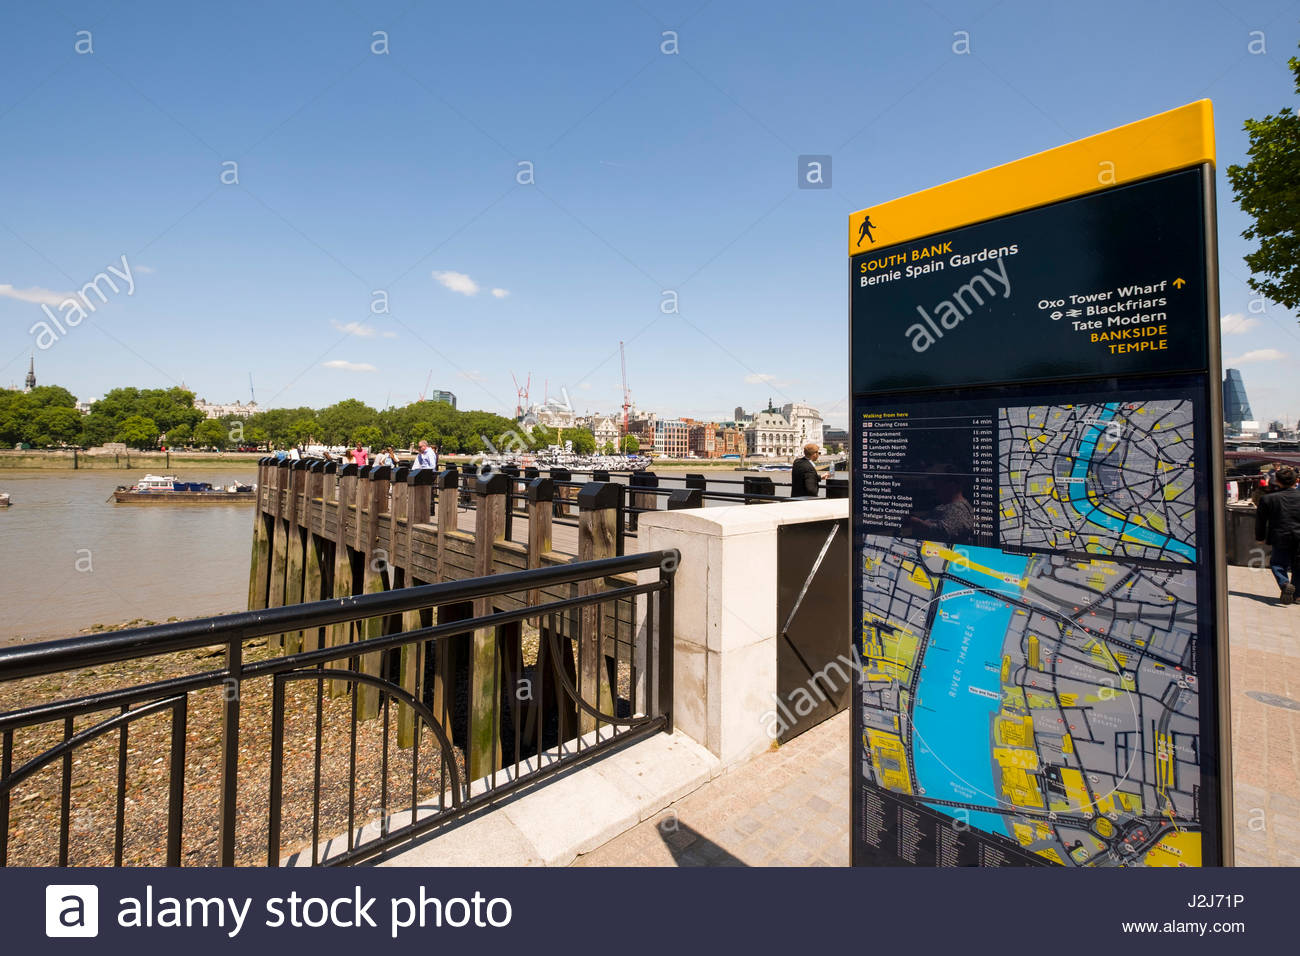 Sign and map of the South Bank along the Queen's Walk, Lambeth, London, England, United Kingdom Stock Photo